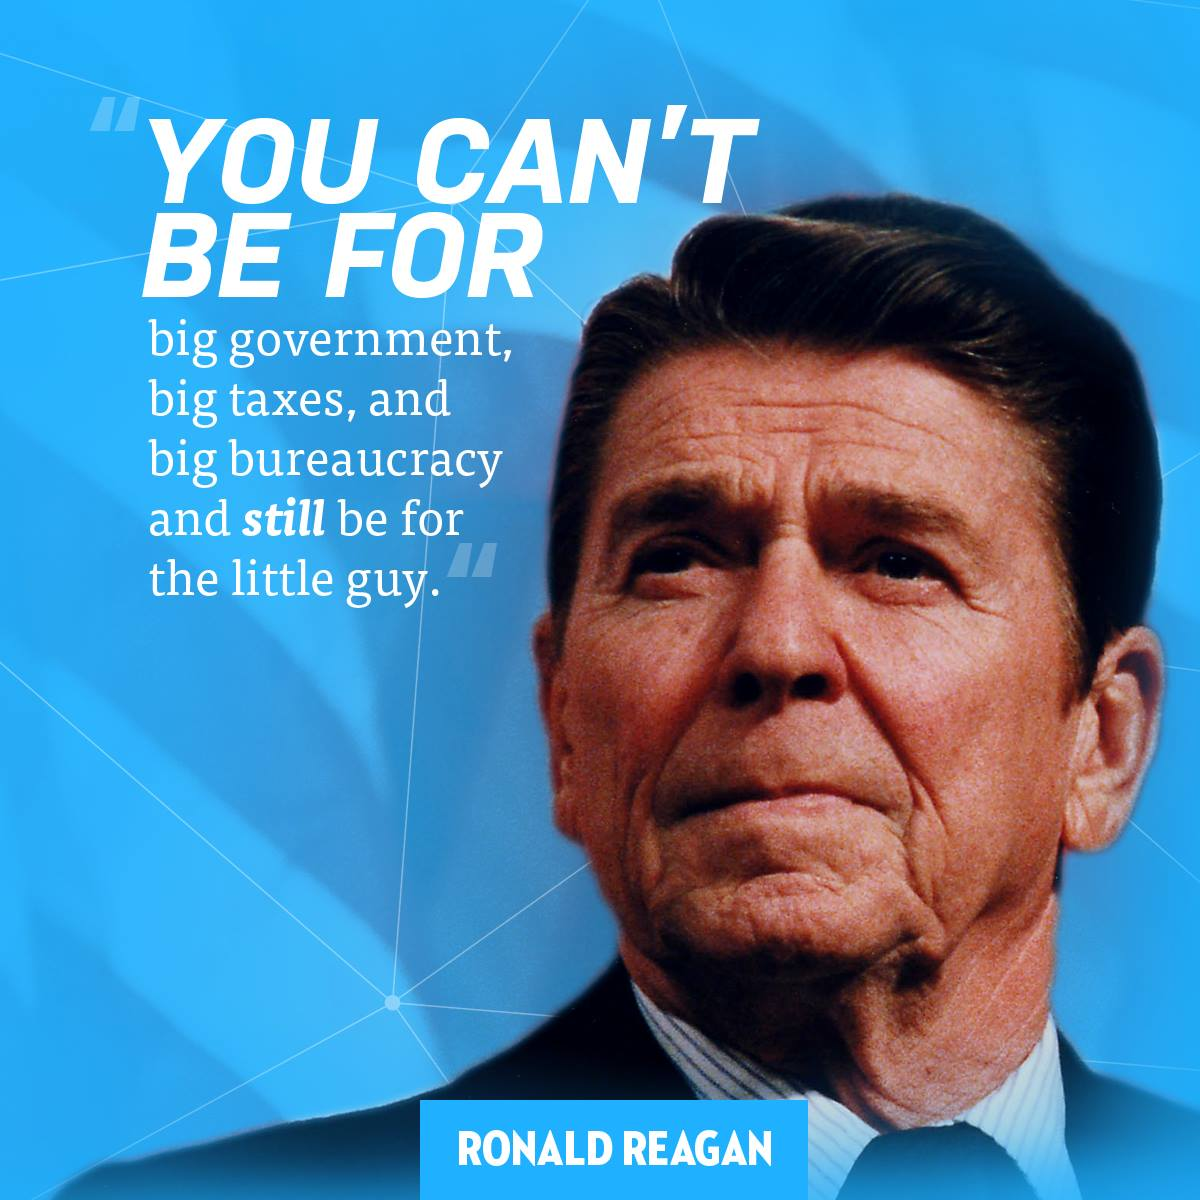 you-cant-be-for-big-government-big-taxes-and-big-bureaucracy-and-still-be-for-the-little-guy